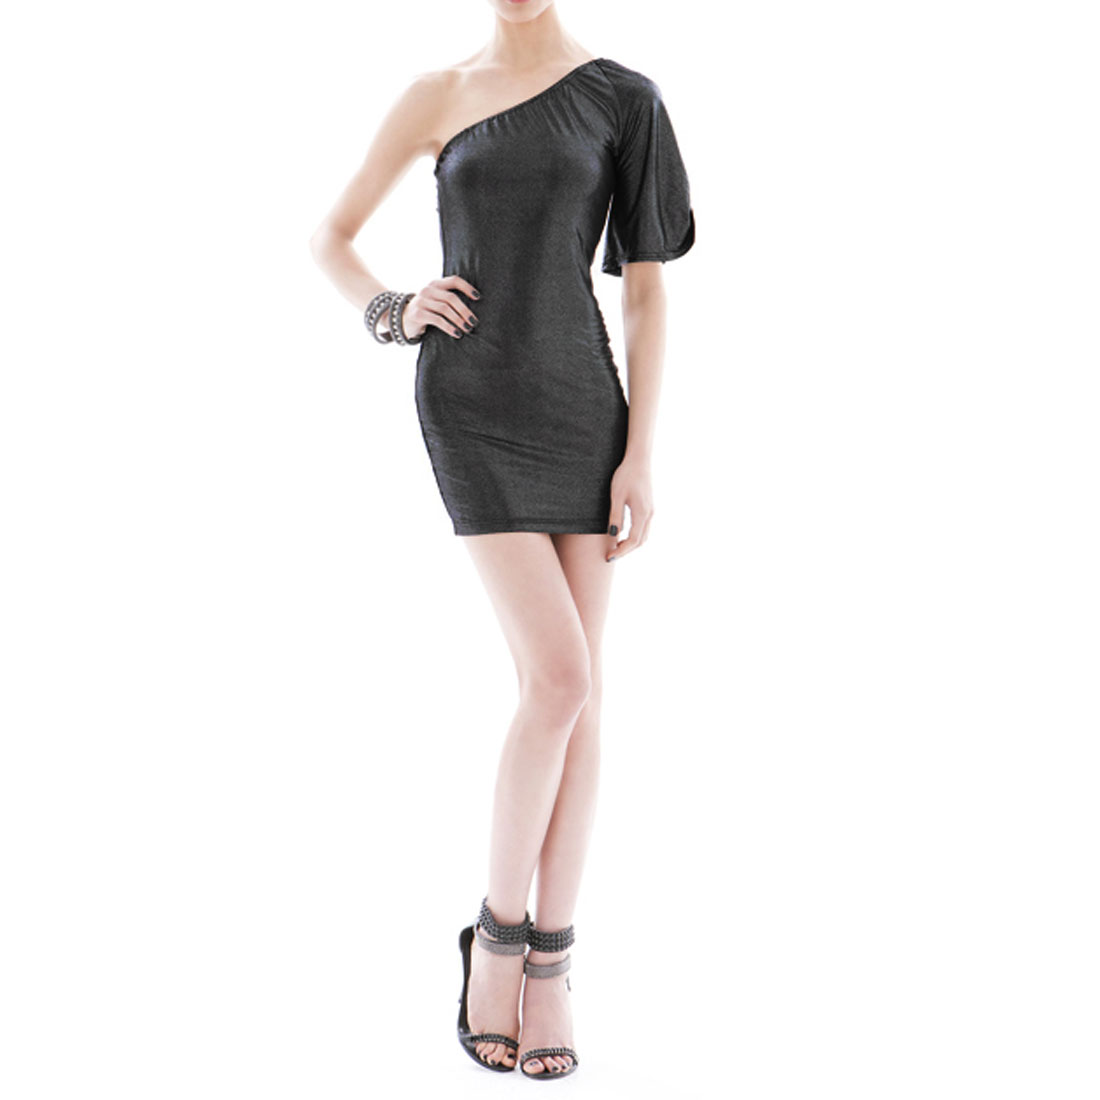 Black Glittery Single Shoulder Formfitting Clubwear Mini Dress for Ladies XS